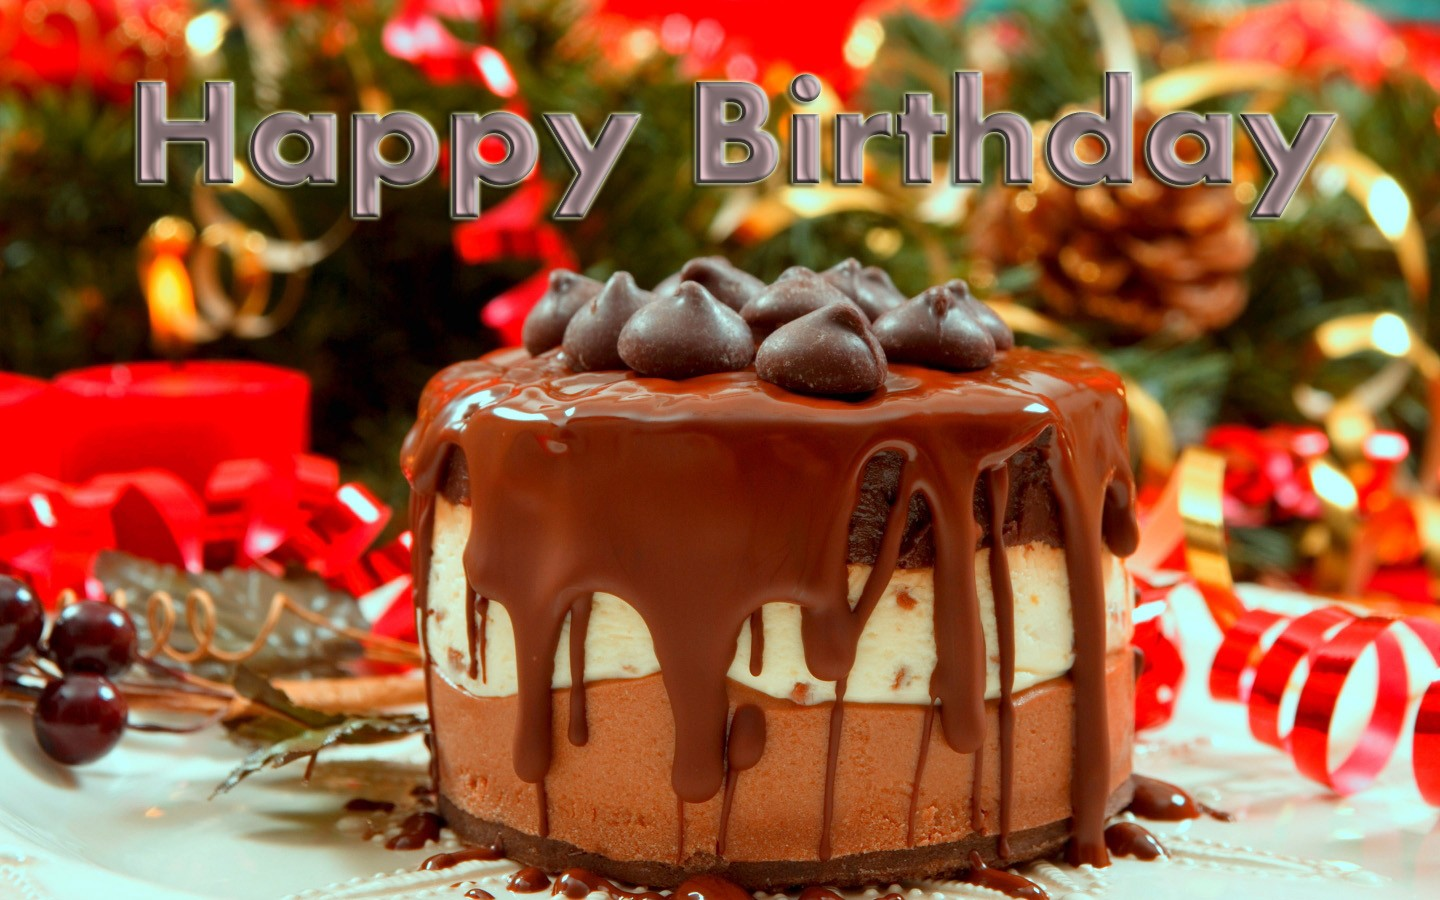 Wallpaper download birthday - Happy Birthday_choco Cake Full Screen Images